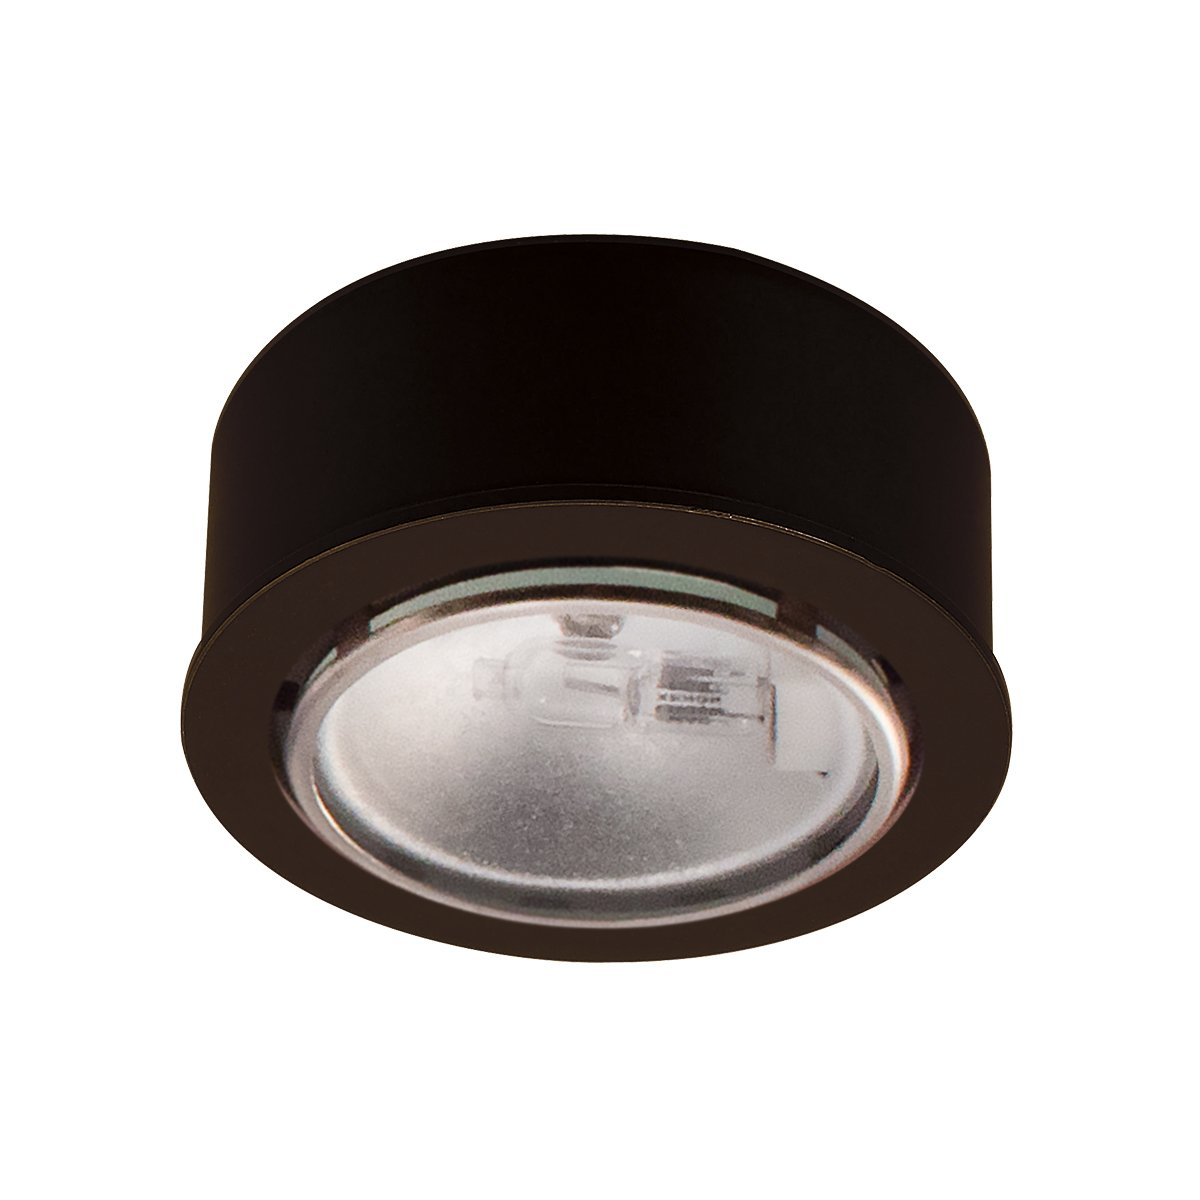 WAC Lighting HR86DB Recessed Button Light, Dark Bronze Finish